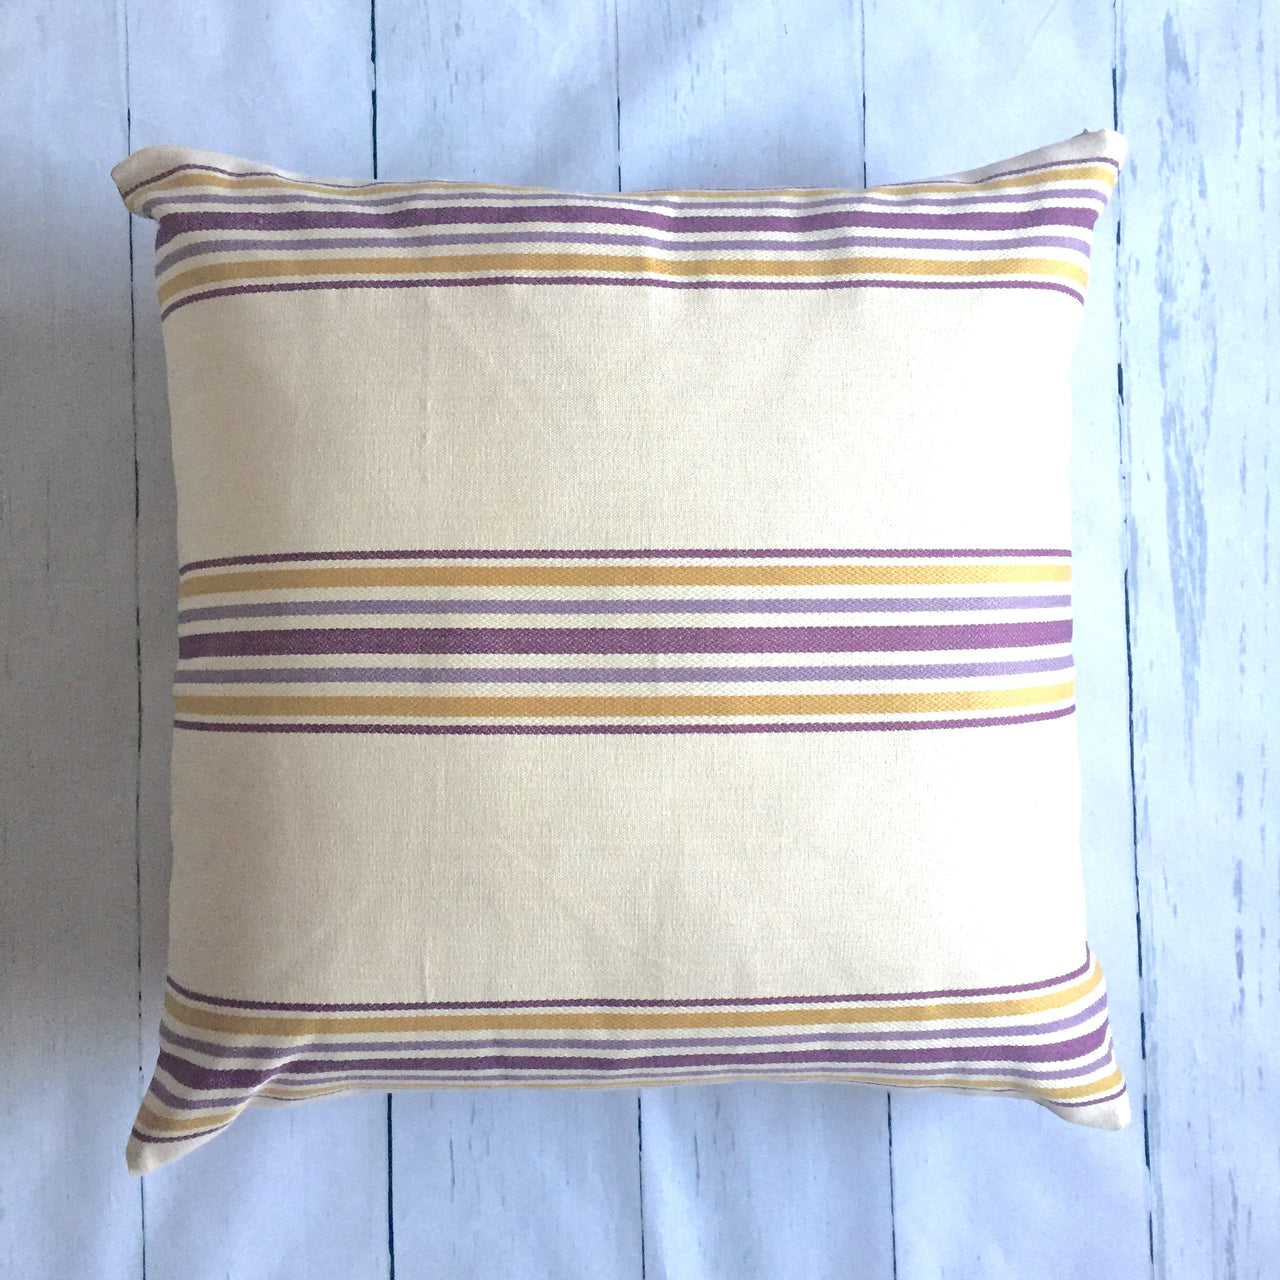 woven-stripe-picnic-plaid-hilary-hope-floor-pillow-eco-friendly-home-decor-sustainable-handmade-front